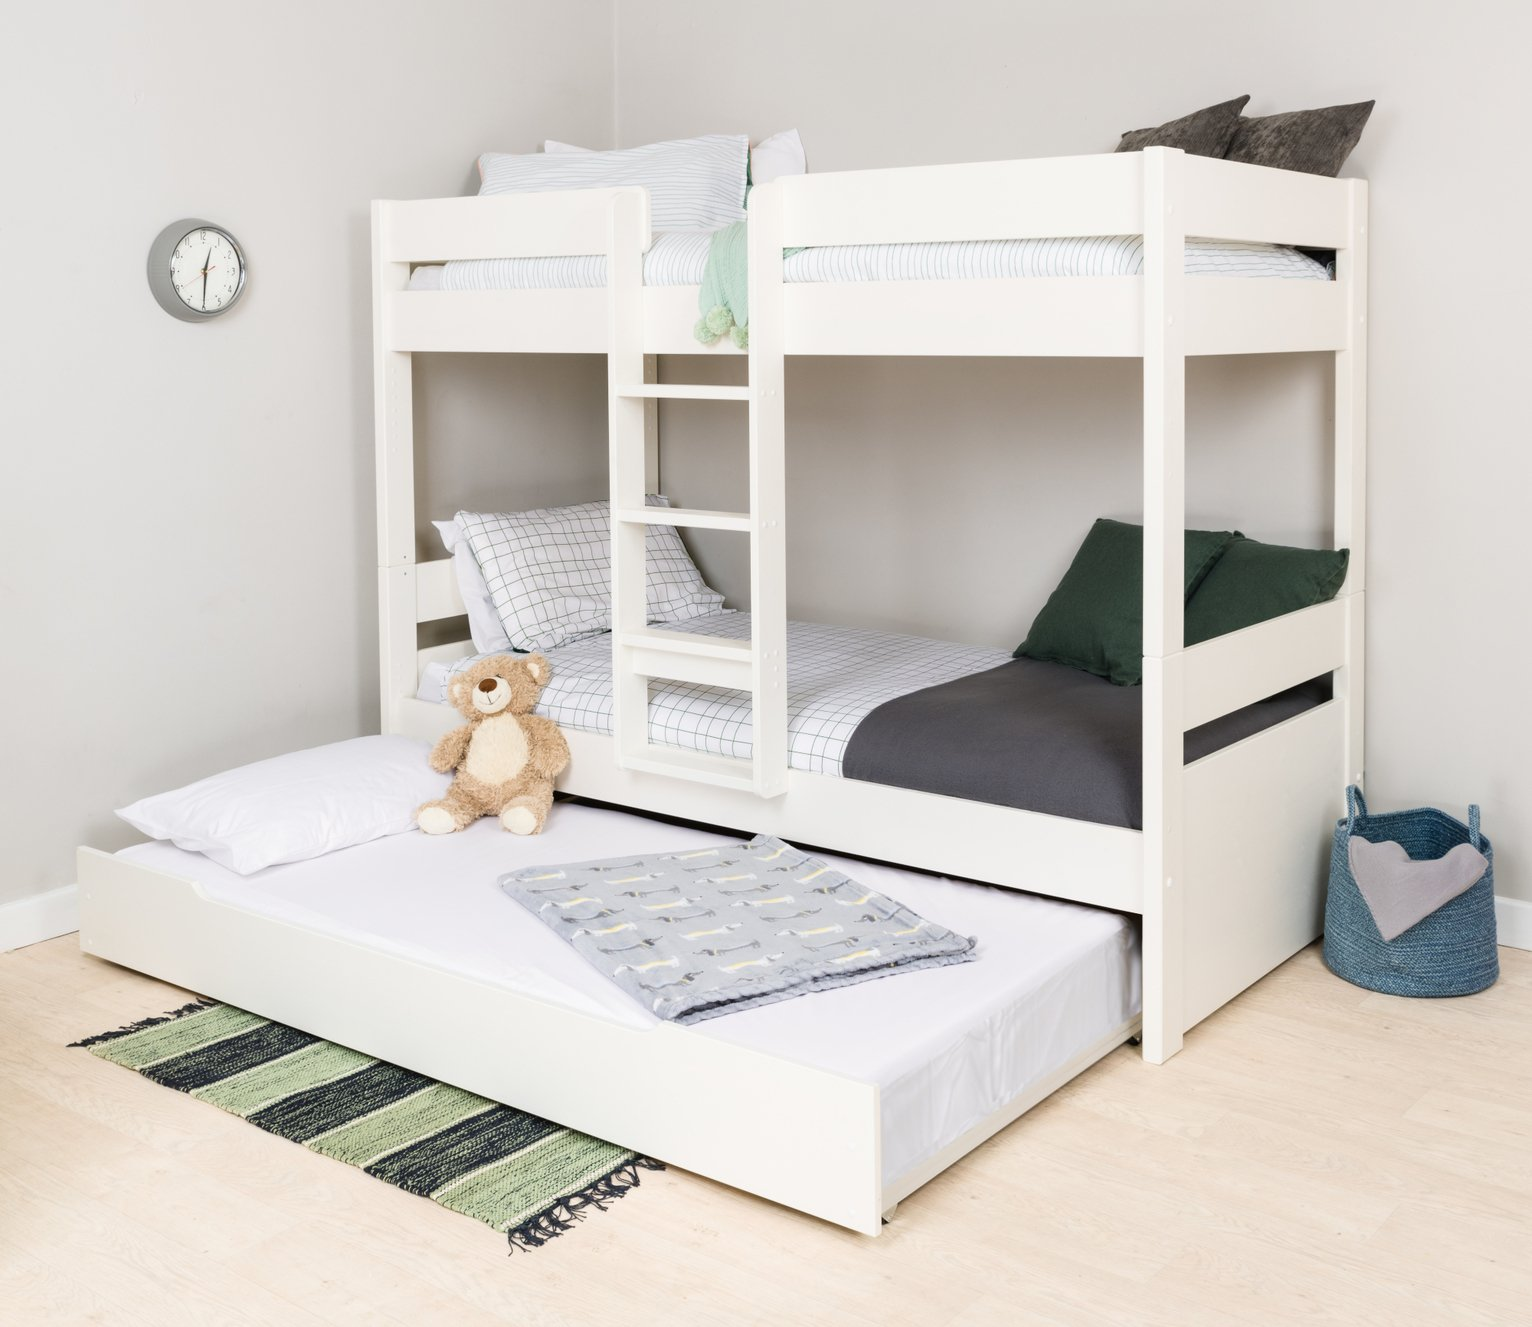 Stompa White Bunk Bed Frame with Trundle